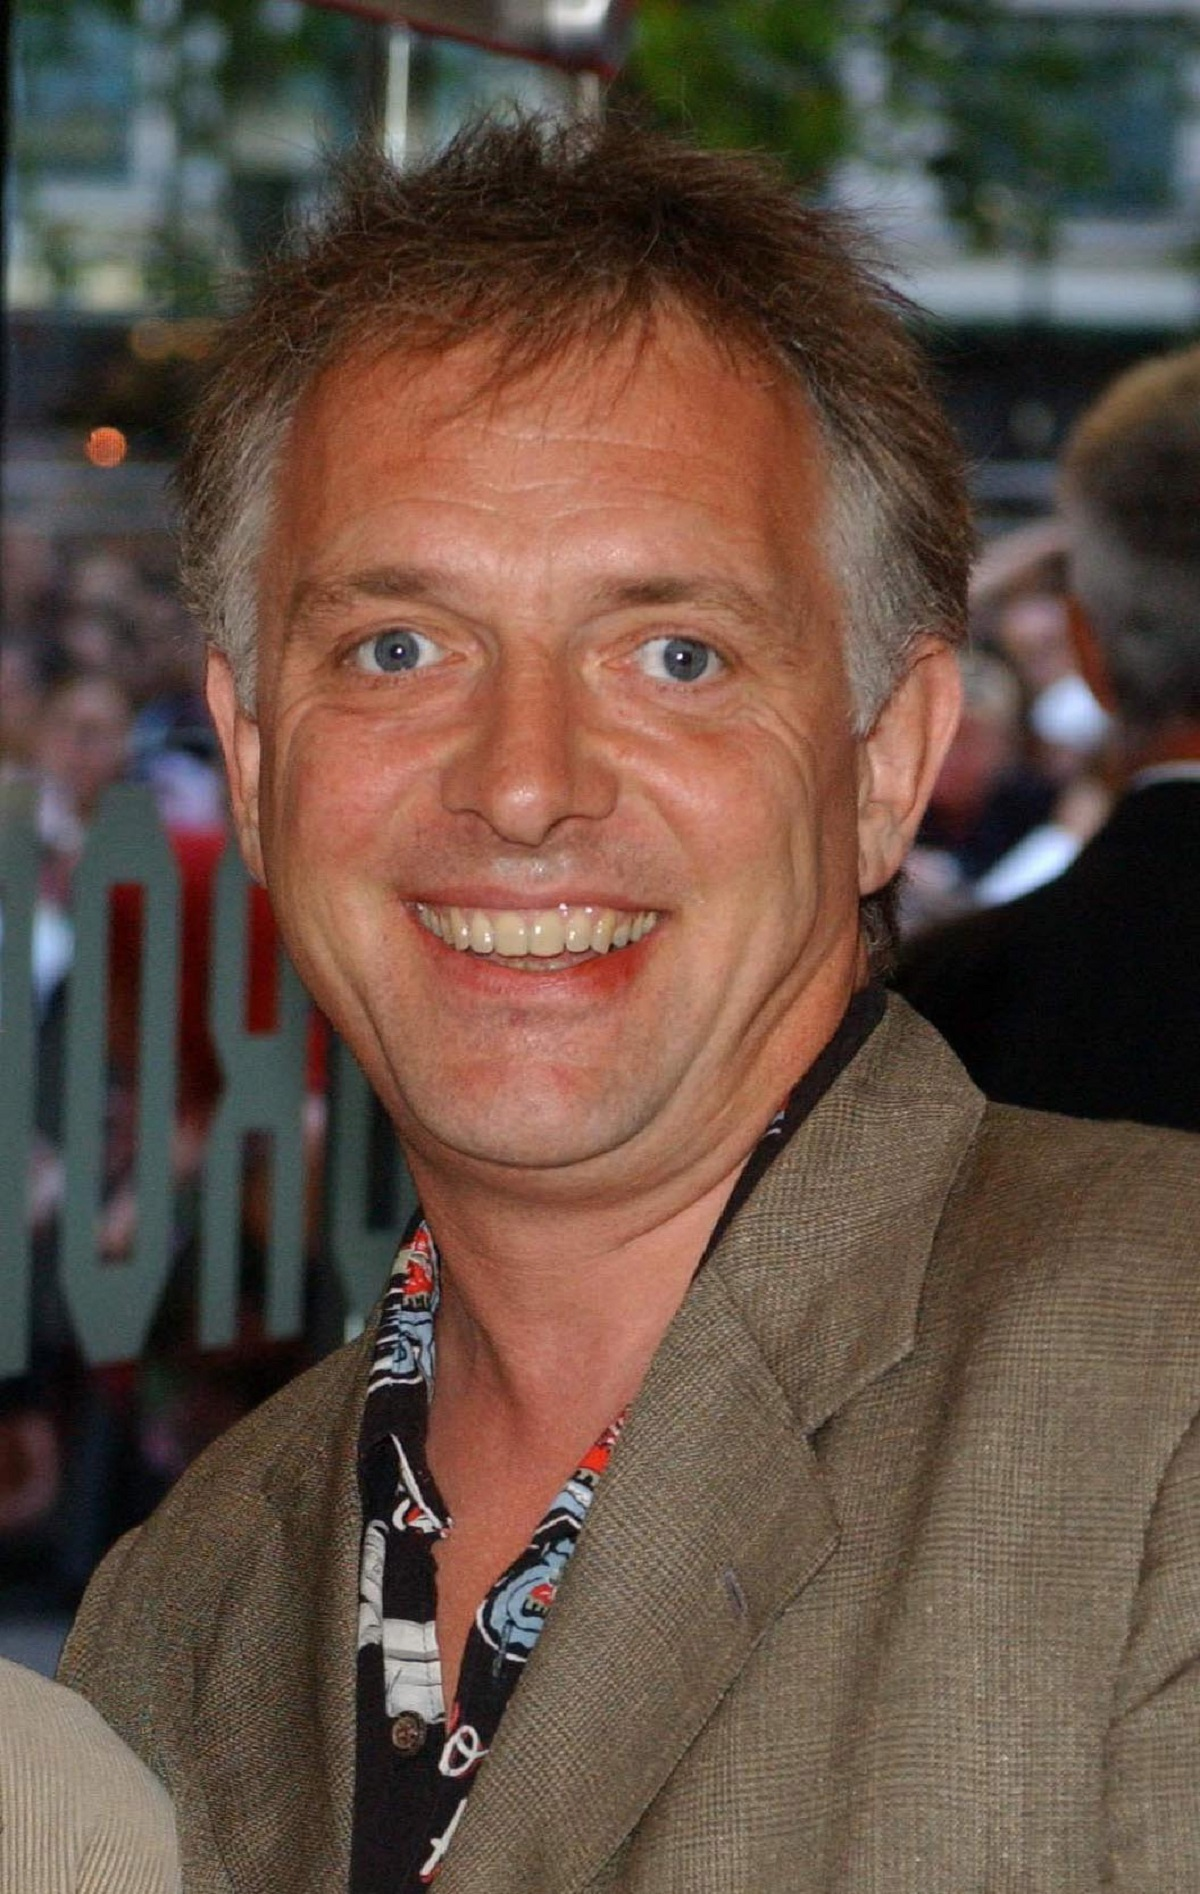 Stars gather for Rik Mayall funeral